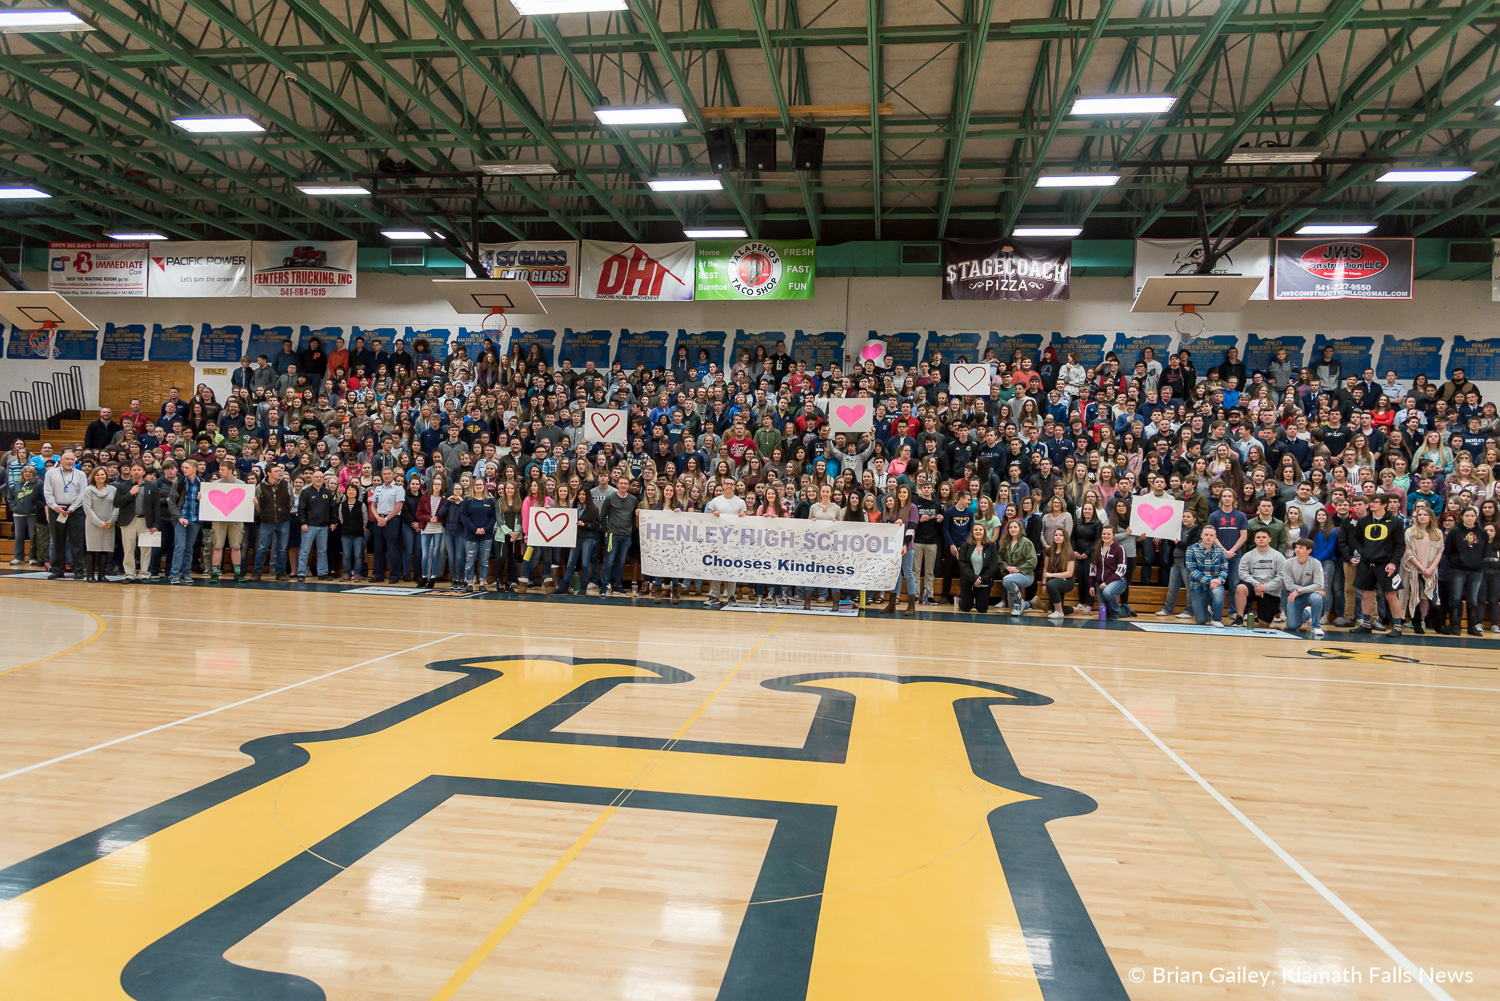 A Henley High School student led assembly to walk up in support for Marjorie Stoneman DouglasHigh School rather than walking out in protest of Gun Control honored the 17 lives lost at the Parkland Shooting. March 14, 2018. (Brian Gailey)